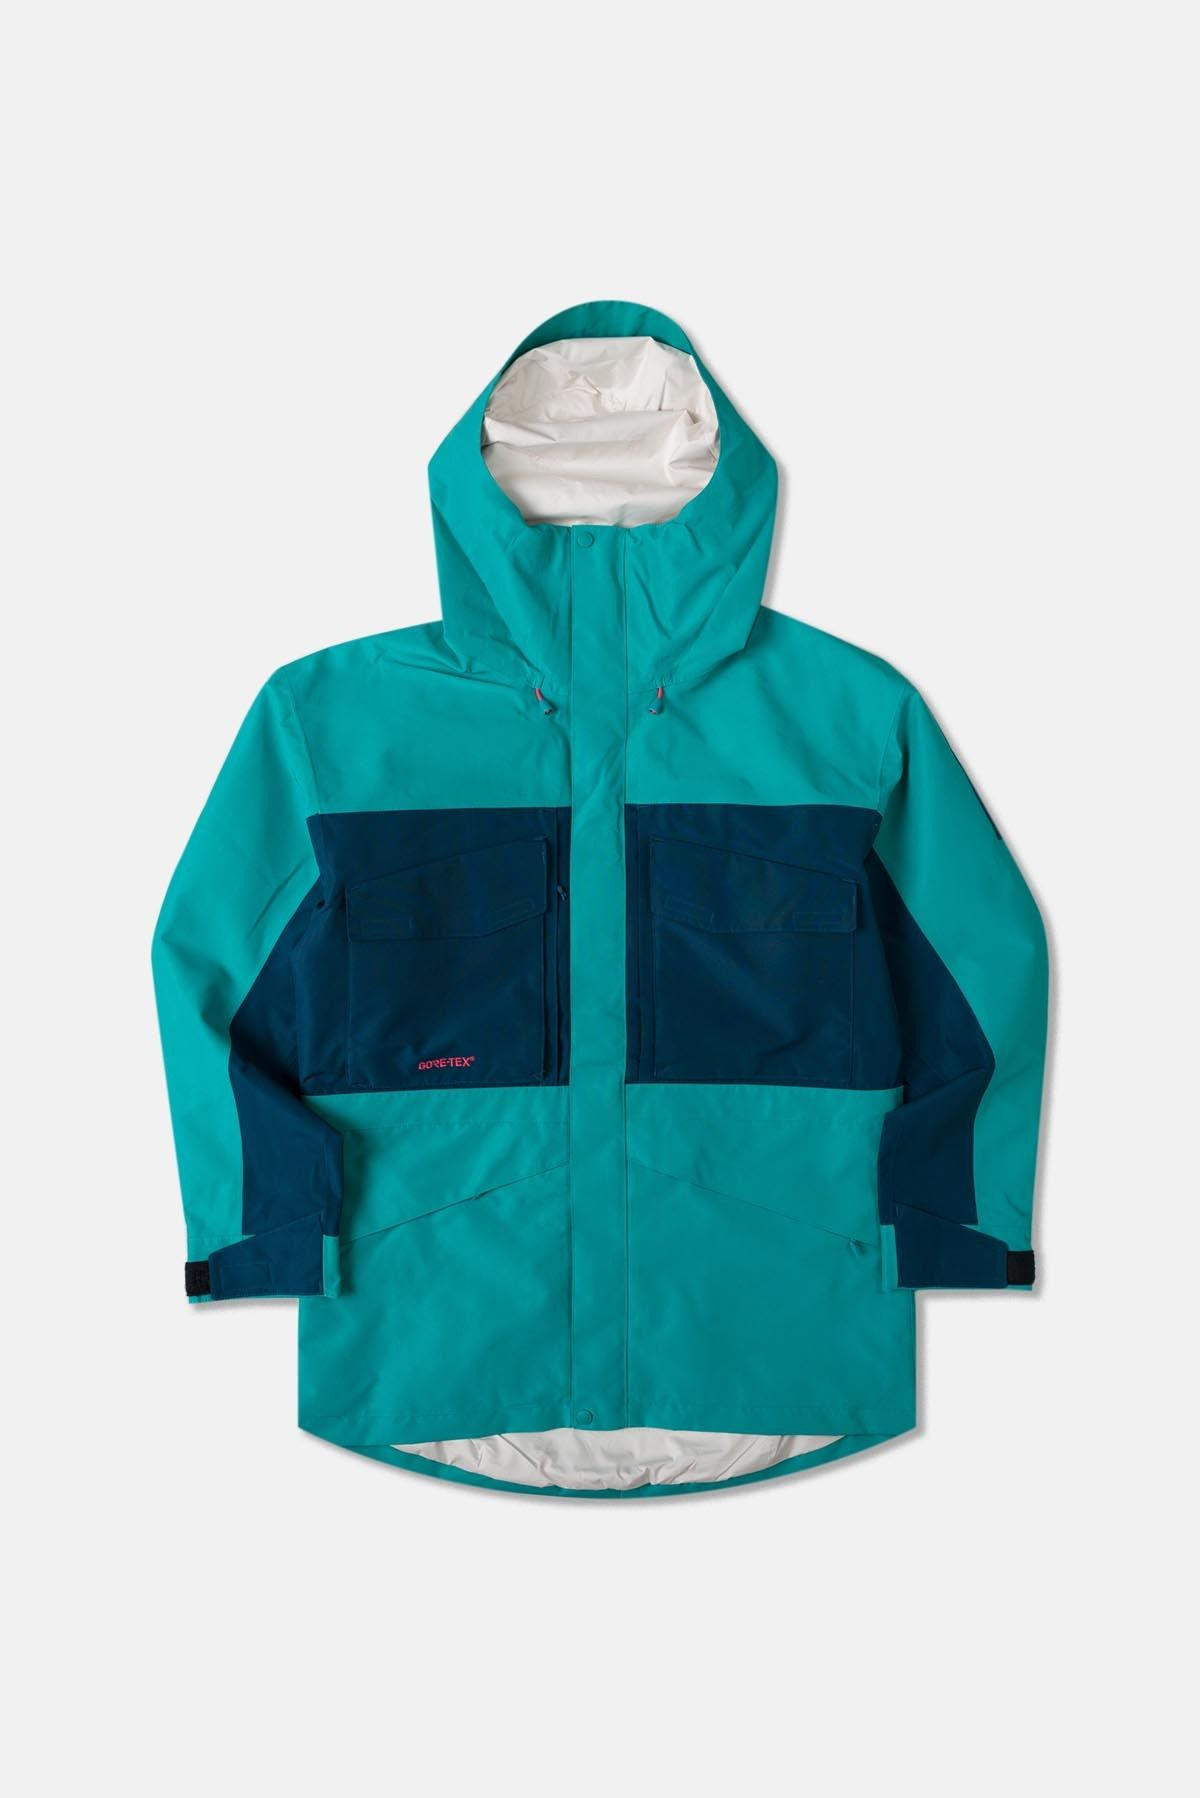 North Face Capsule Fantasy Ridge GTX Jacket available from